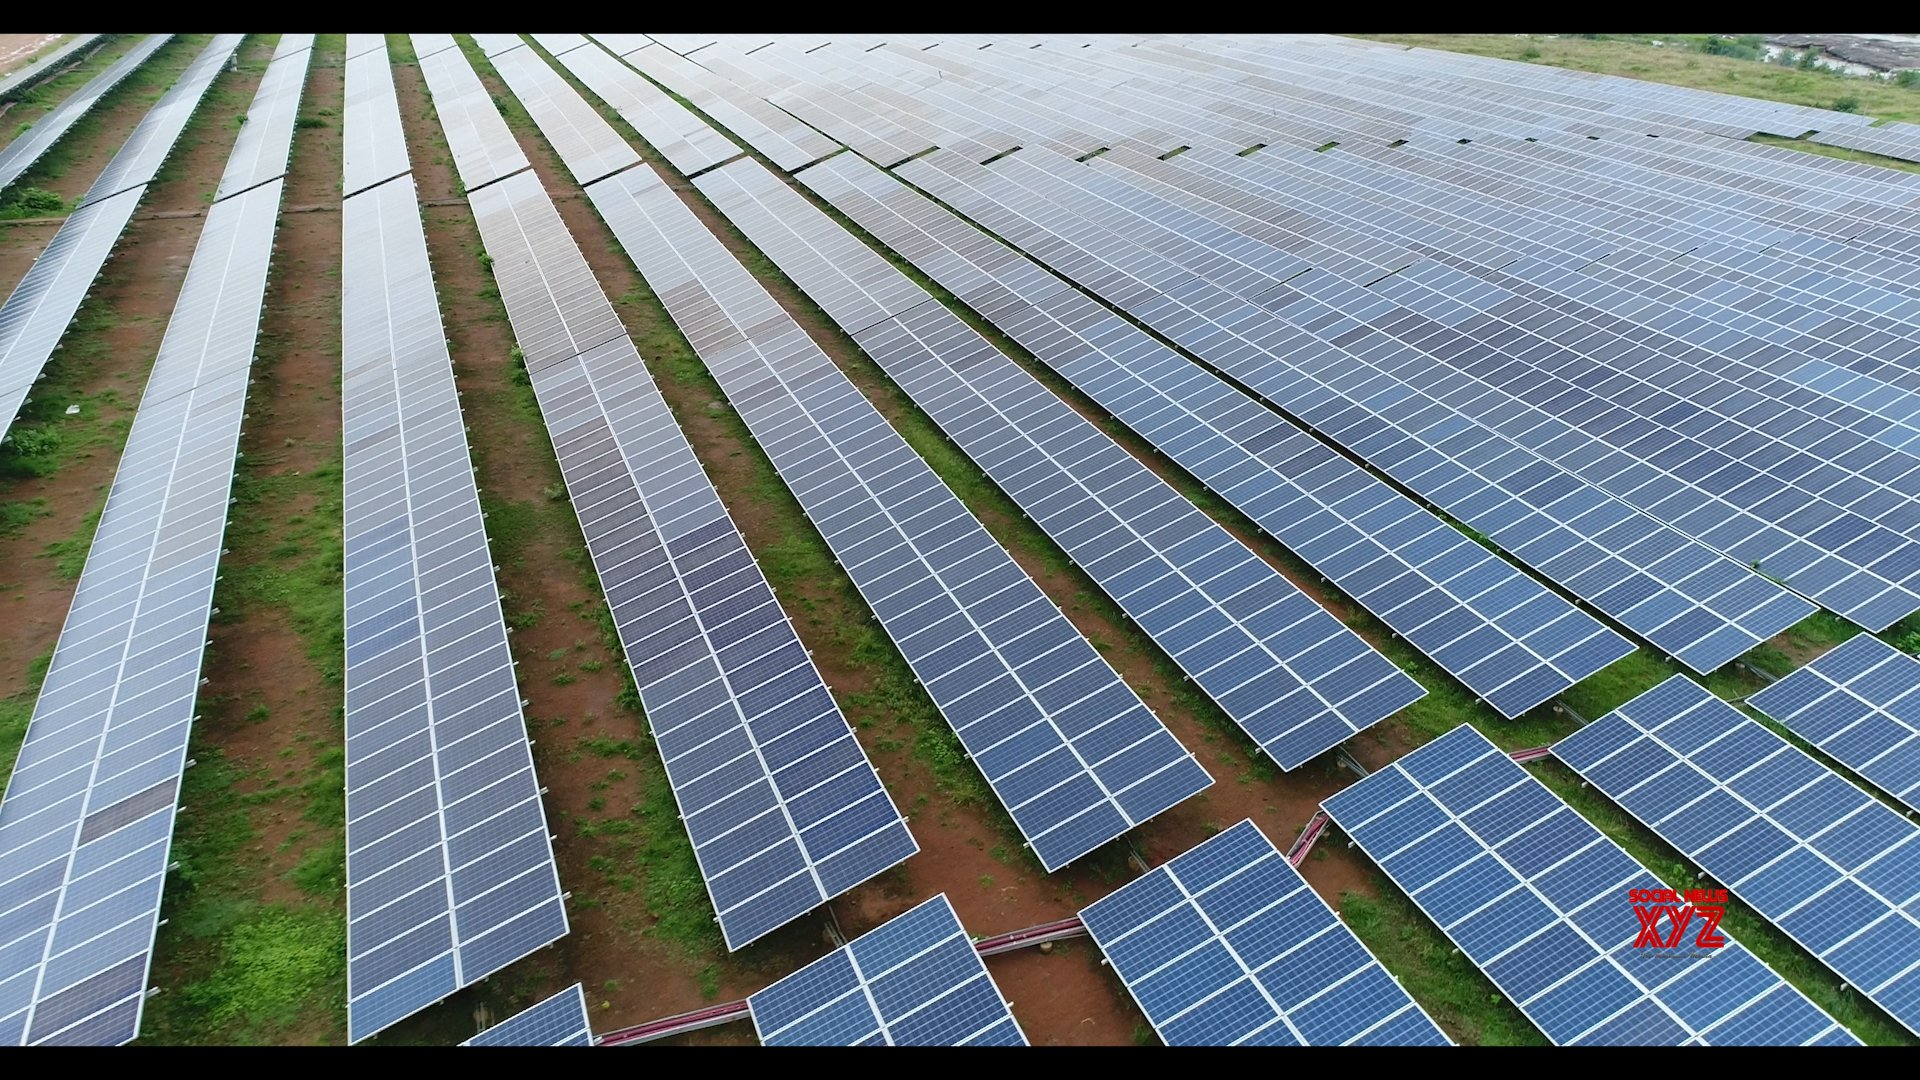 Rajasthan can lead in clean energy transition: IEEFA